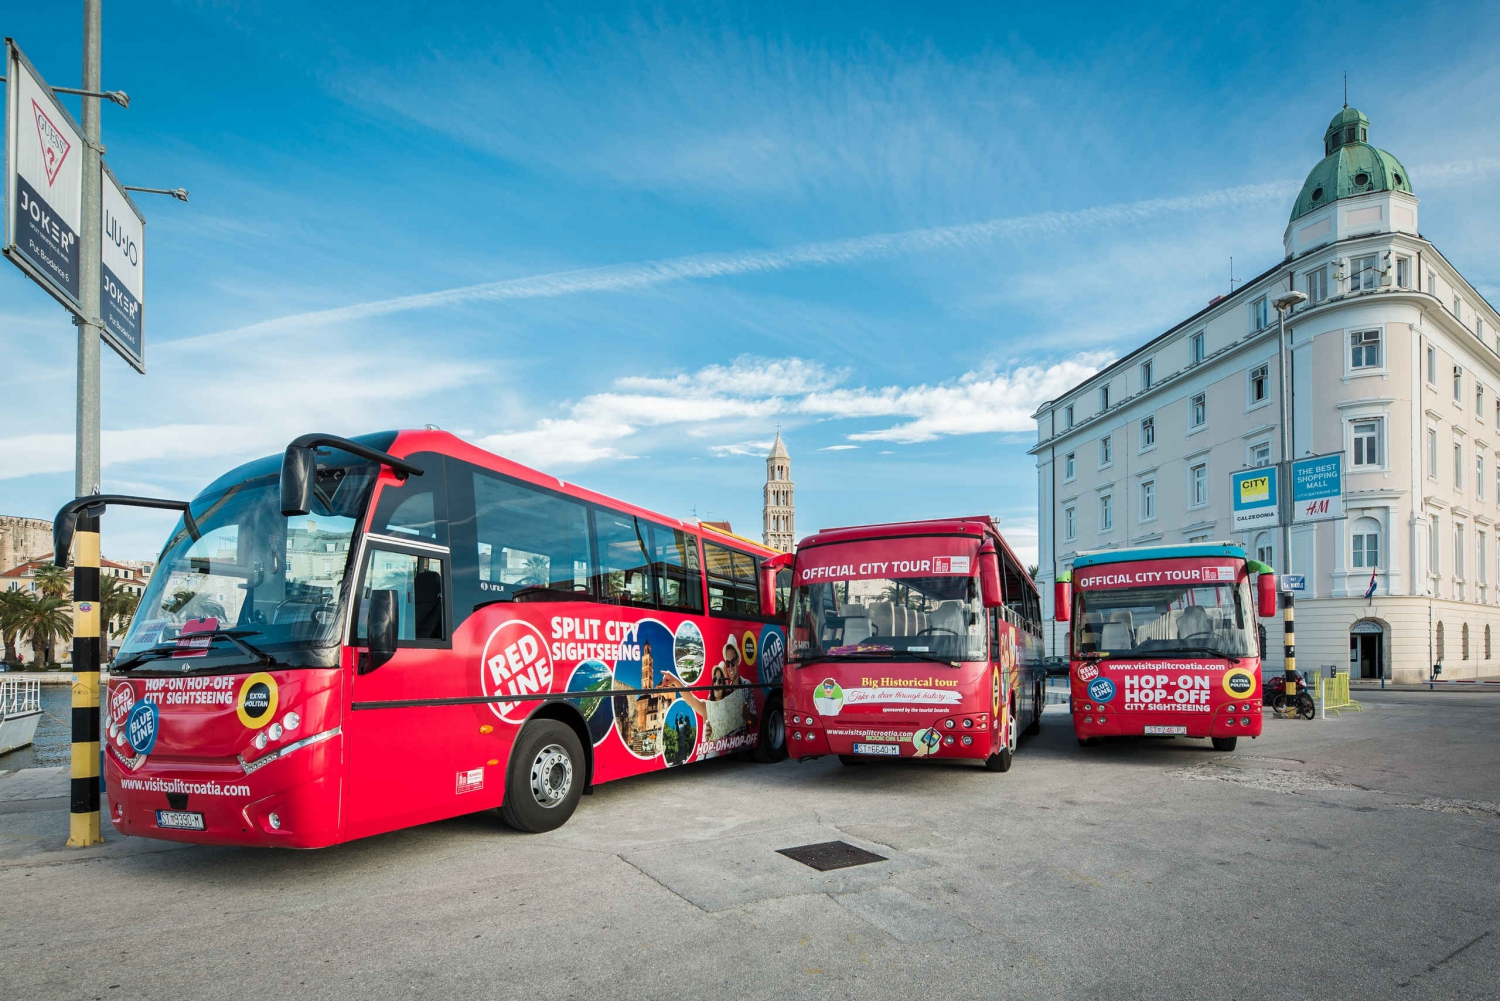 Split: Hop-on-Hop-off Bus Tour with Guided Walking Tours